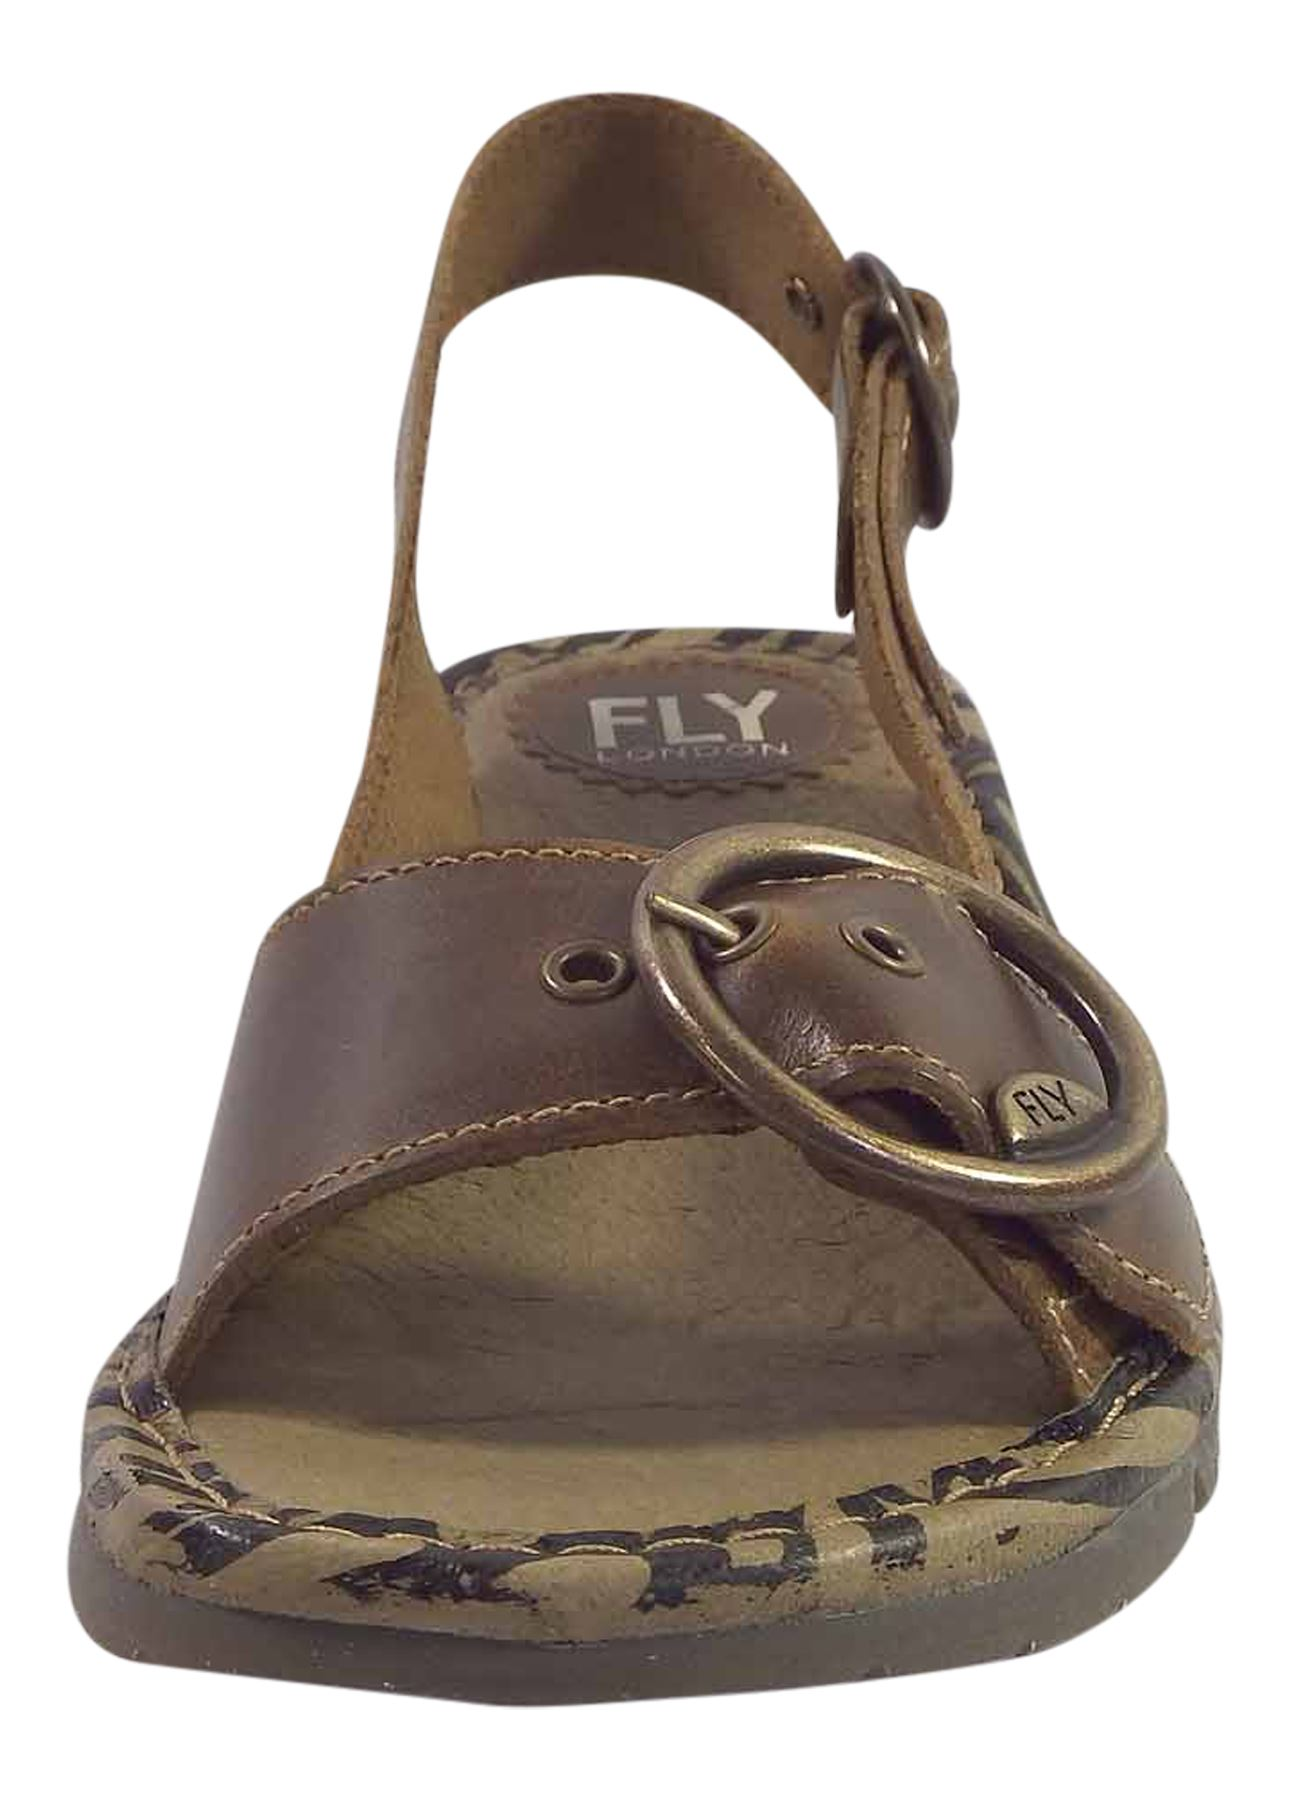 Fly-London-Ladies-TRAM723FLY-Lo-Wedge-Slingback-Summer-Sandals-Leather thumbnail 28